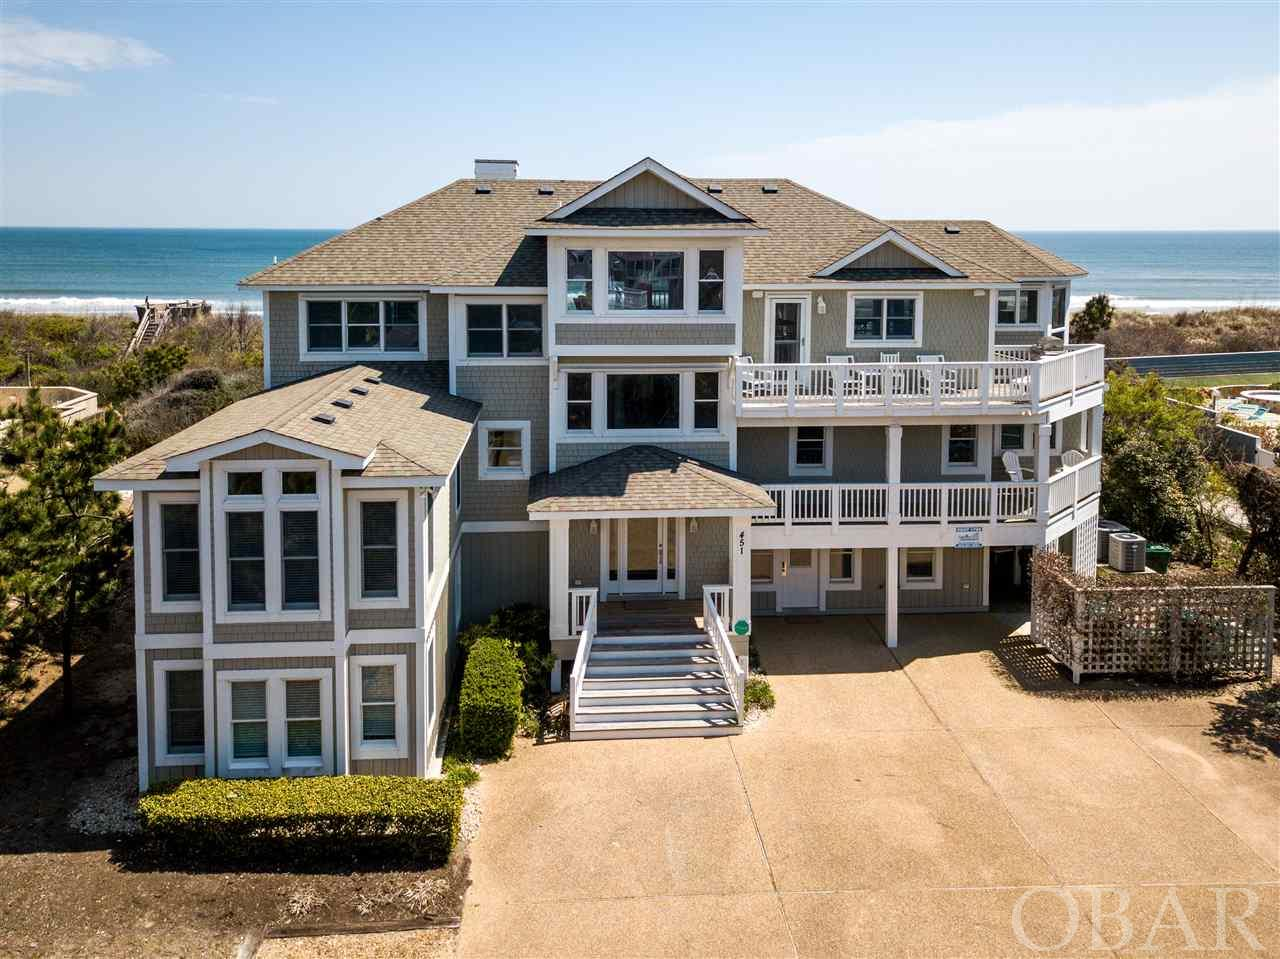 451 PIPSI POINT ROAD, COROLLA, NC 27927